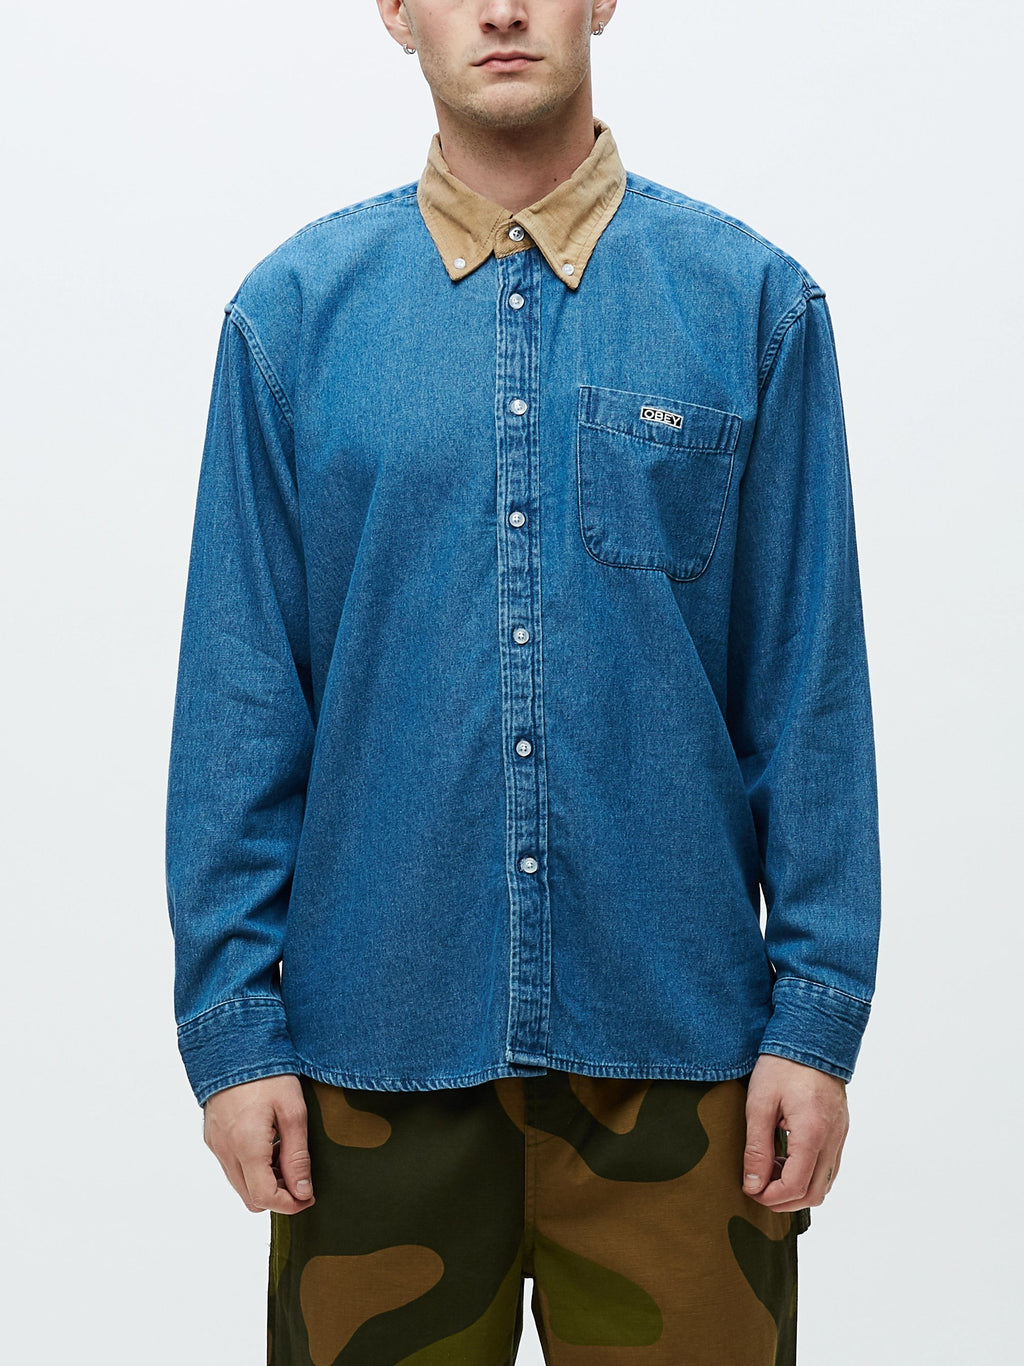 Obey - Nolan Denim Woven - Light Indigo - Guyz